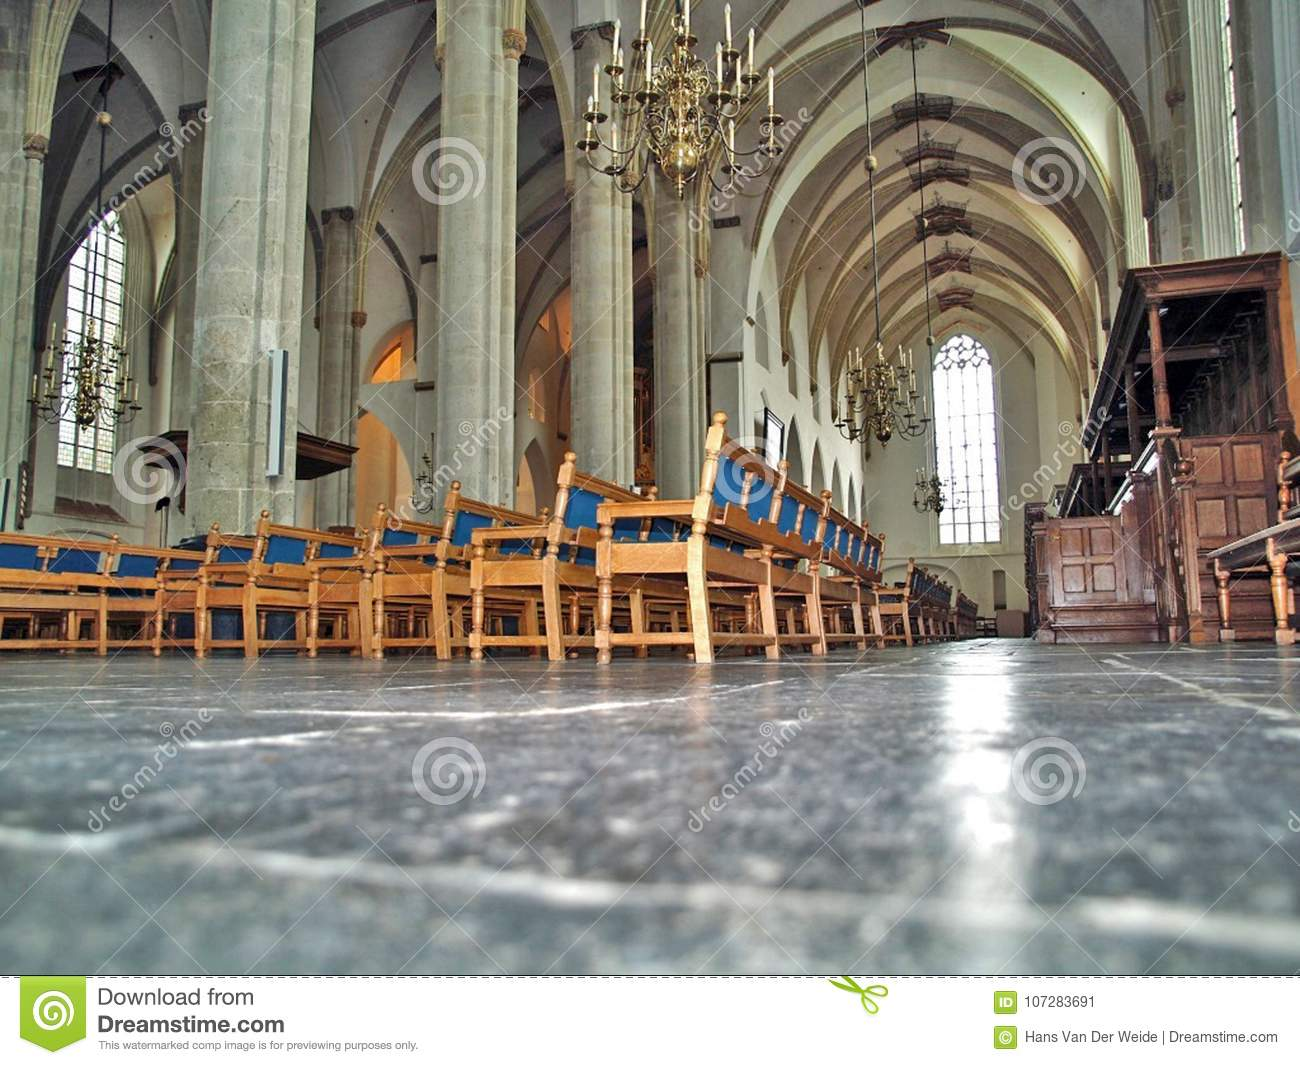 Interior of Gothic church photographed from frog perspective